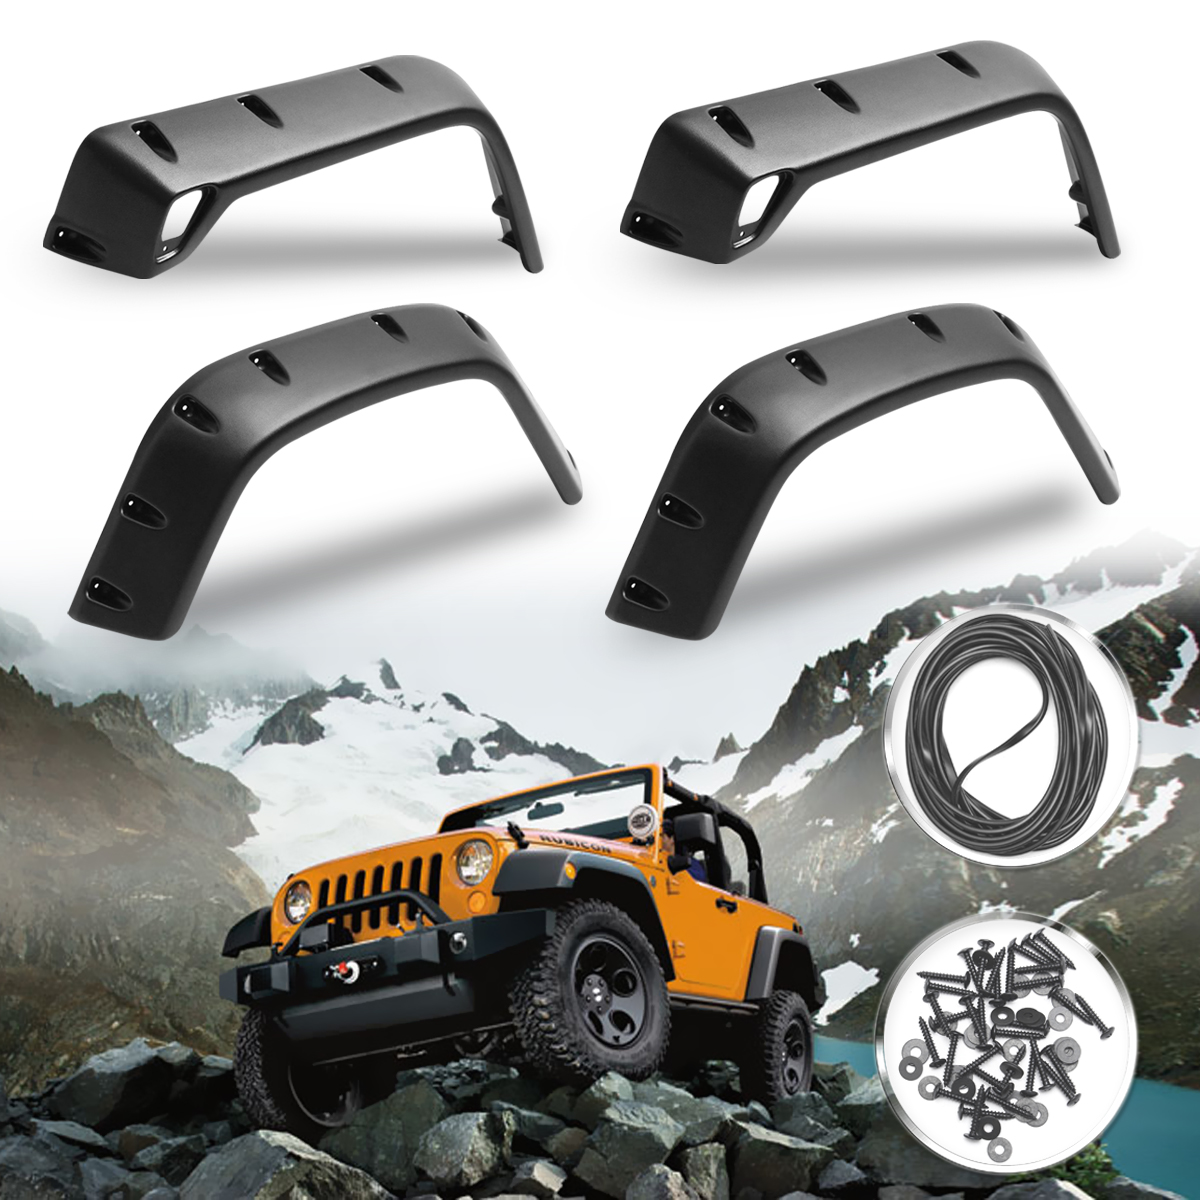 6pcs/Set For Jeep 98-06 For Wrangler TJ 7 Wide Style Protector For Fender Flares6pcs/Set For Jeep 98-06 For Wrangler TJ 7 Wide Style Protector For Fender Flares